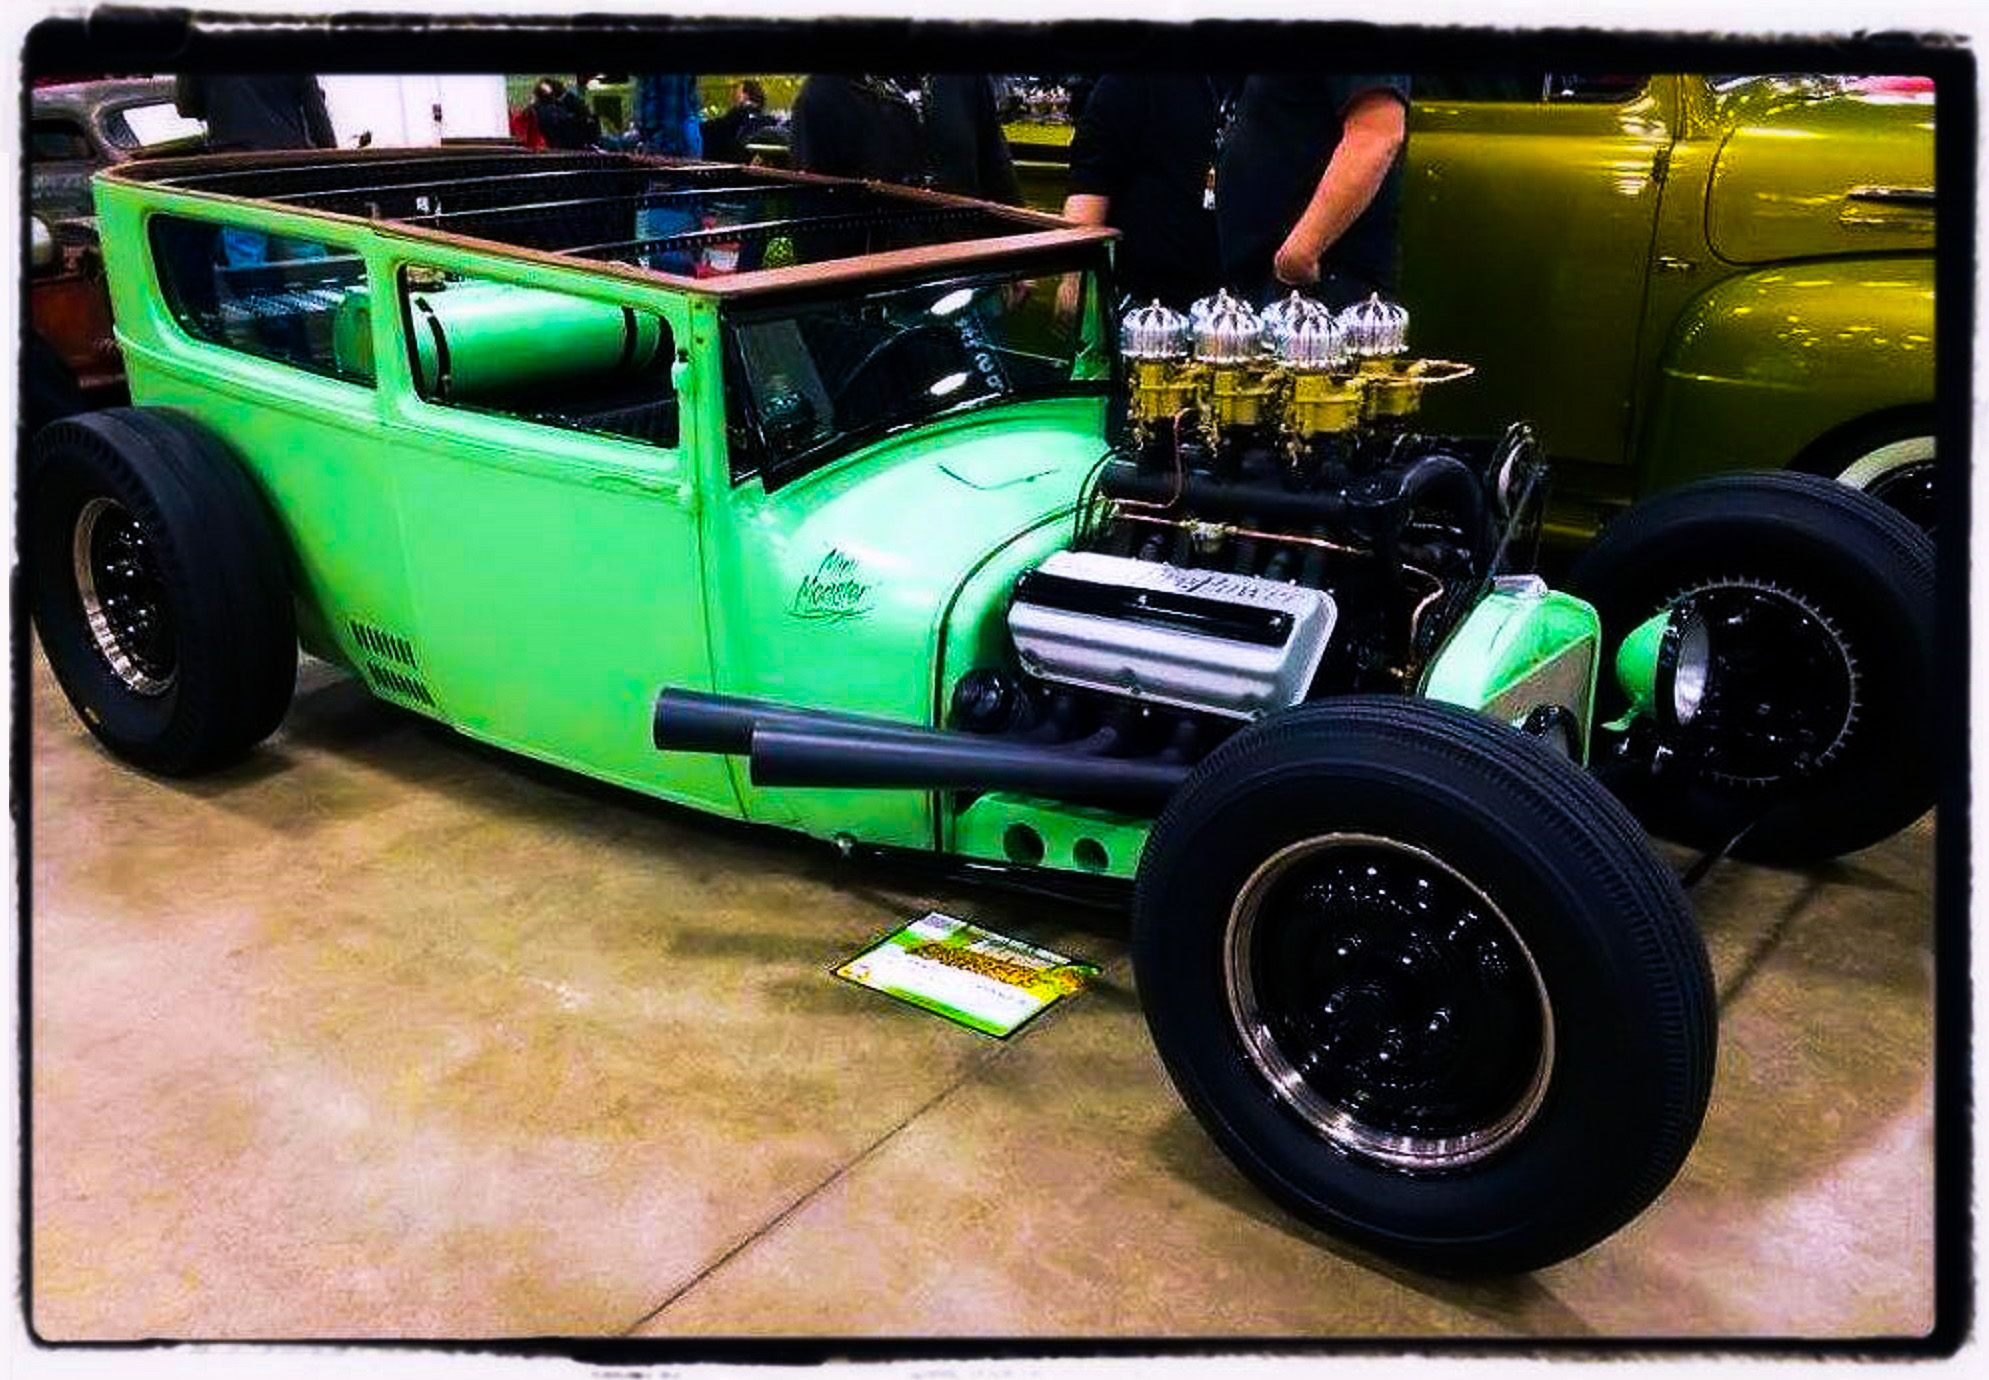 1927 Ford Sedan Hot Rod | Kustom Rides | Pinterest | Sedans, Ford ...